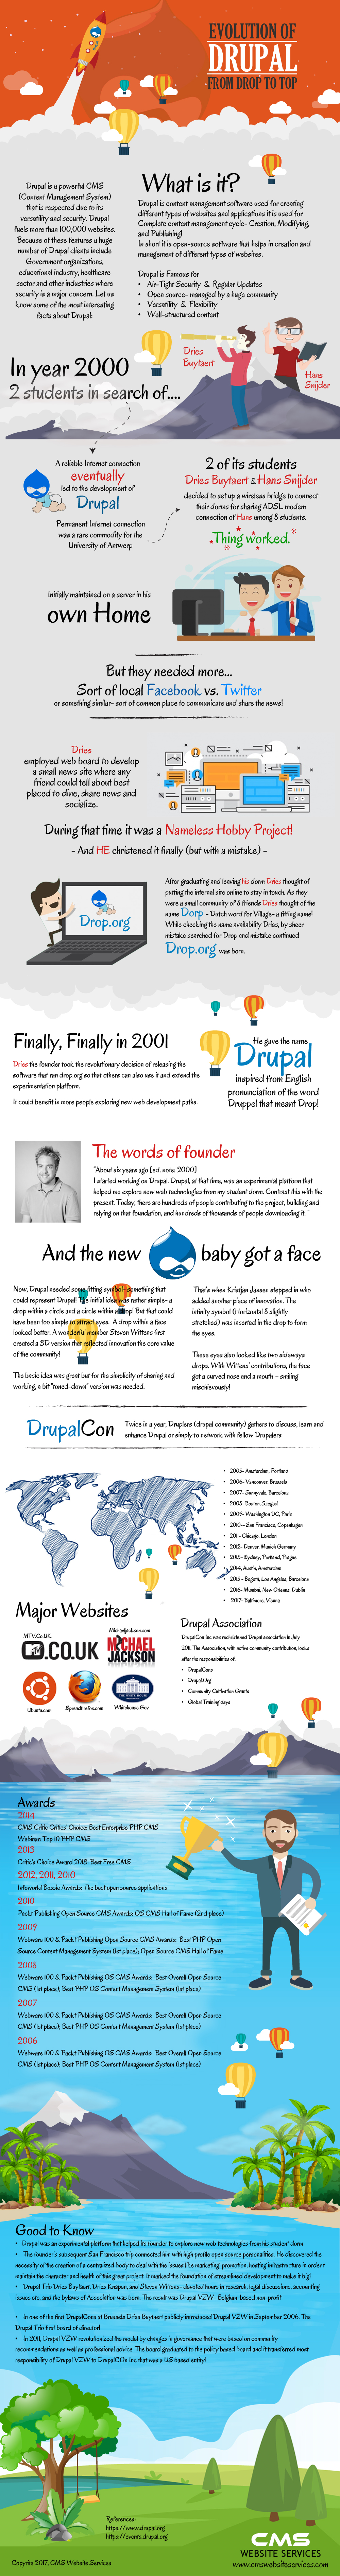 The story of Drupal [Infographic] - Techno FAQ